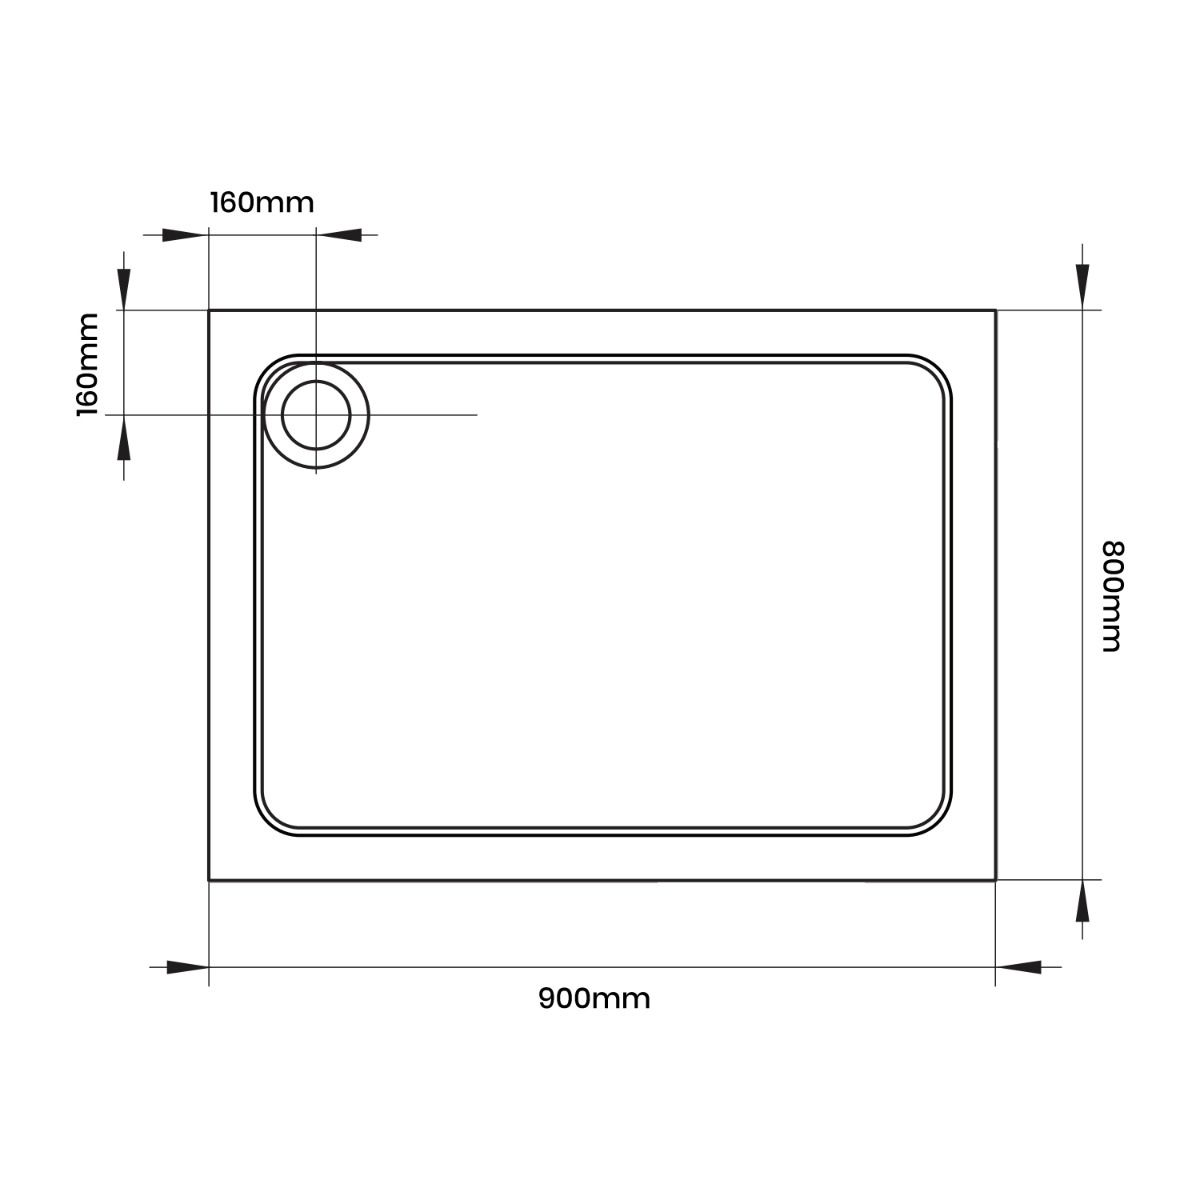 April Square Anti Slip Shower Tray 900 x 800 Line Drawing